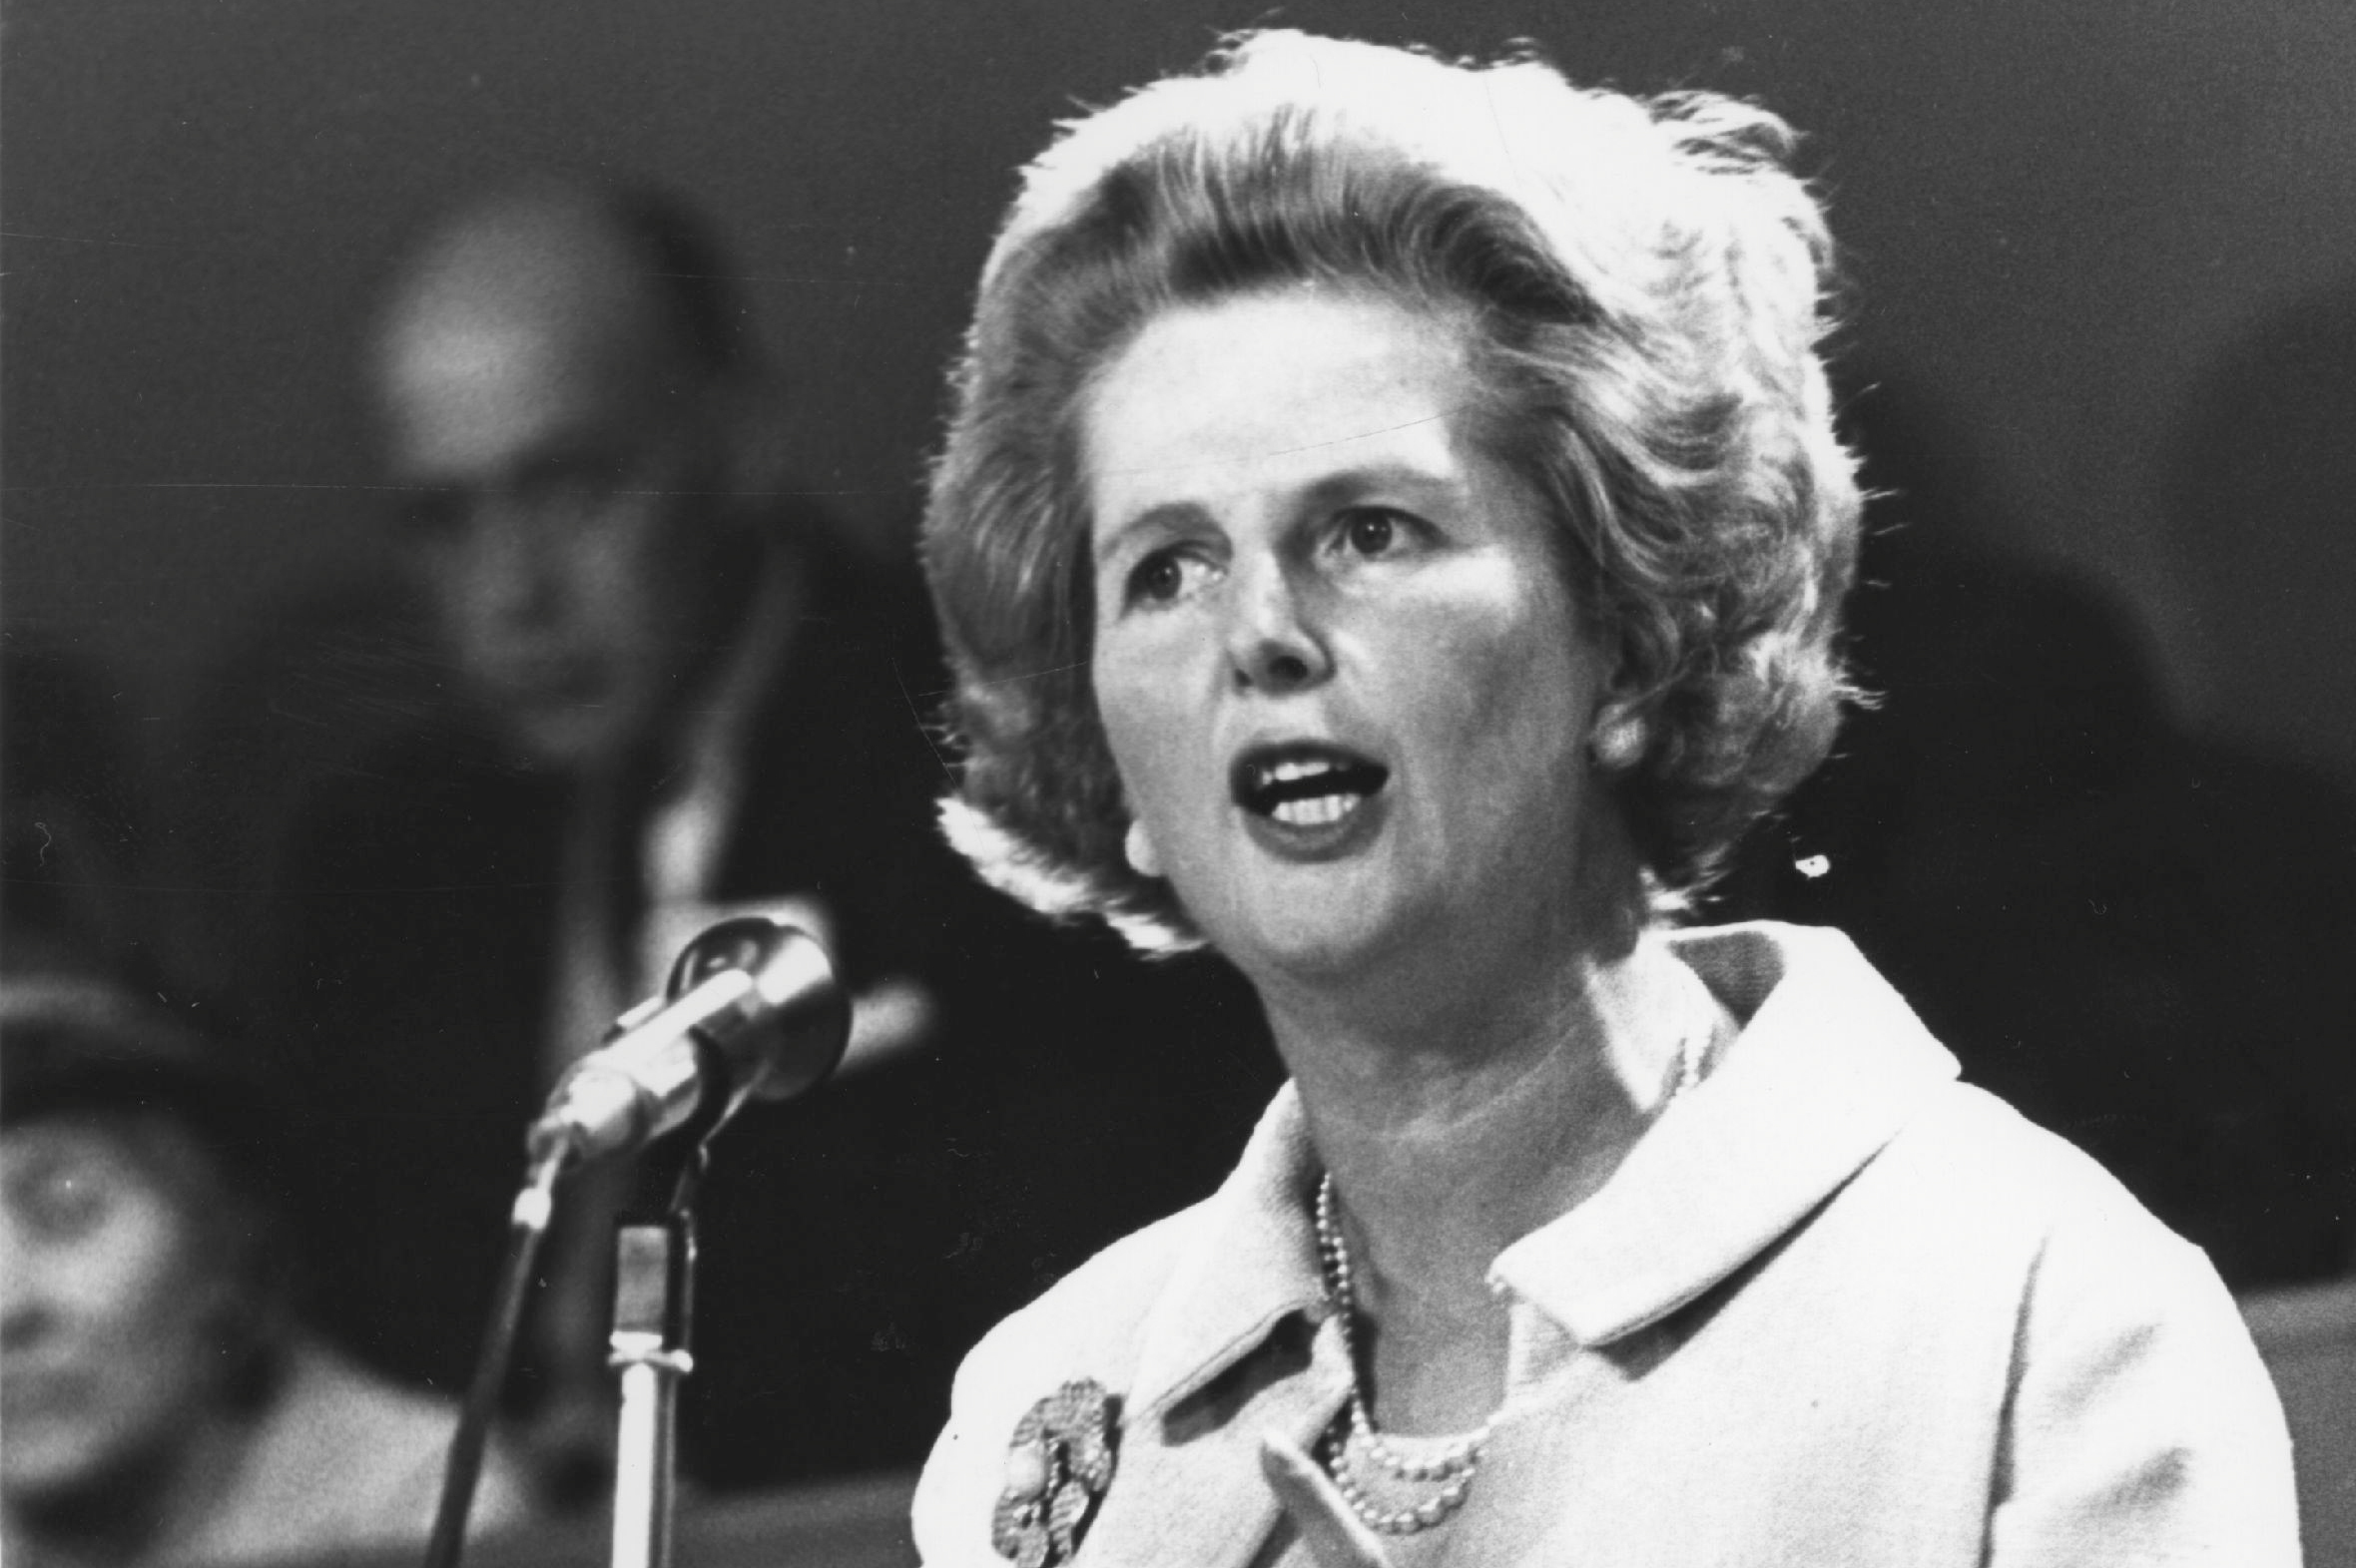 Britain's Iron Lady, Former Prime Minister Thatcher, Dies ...